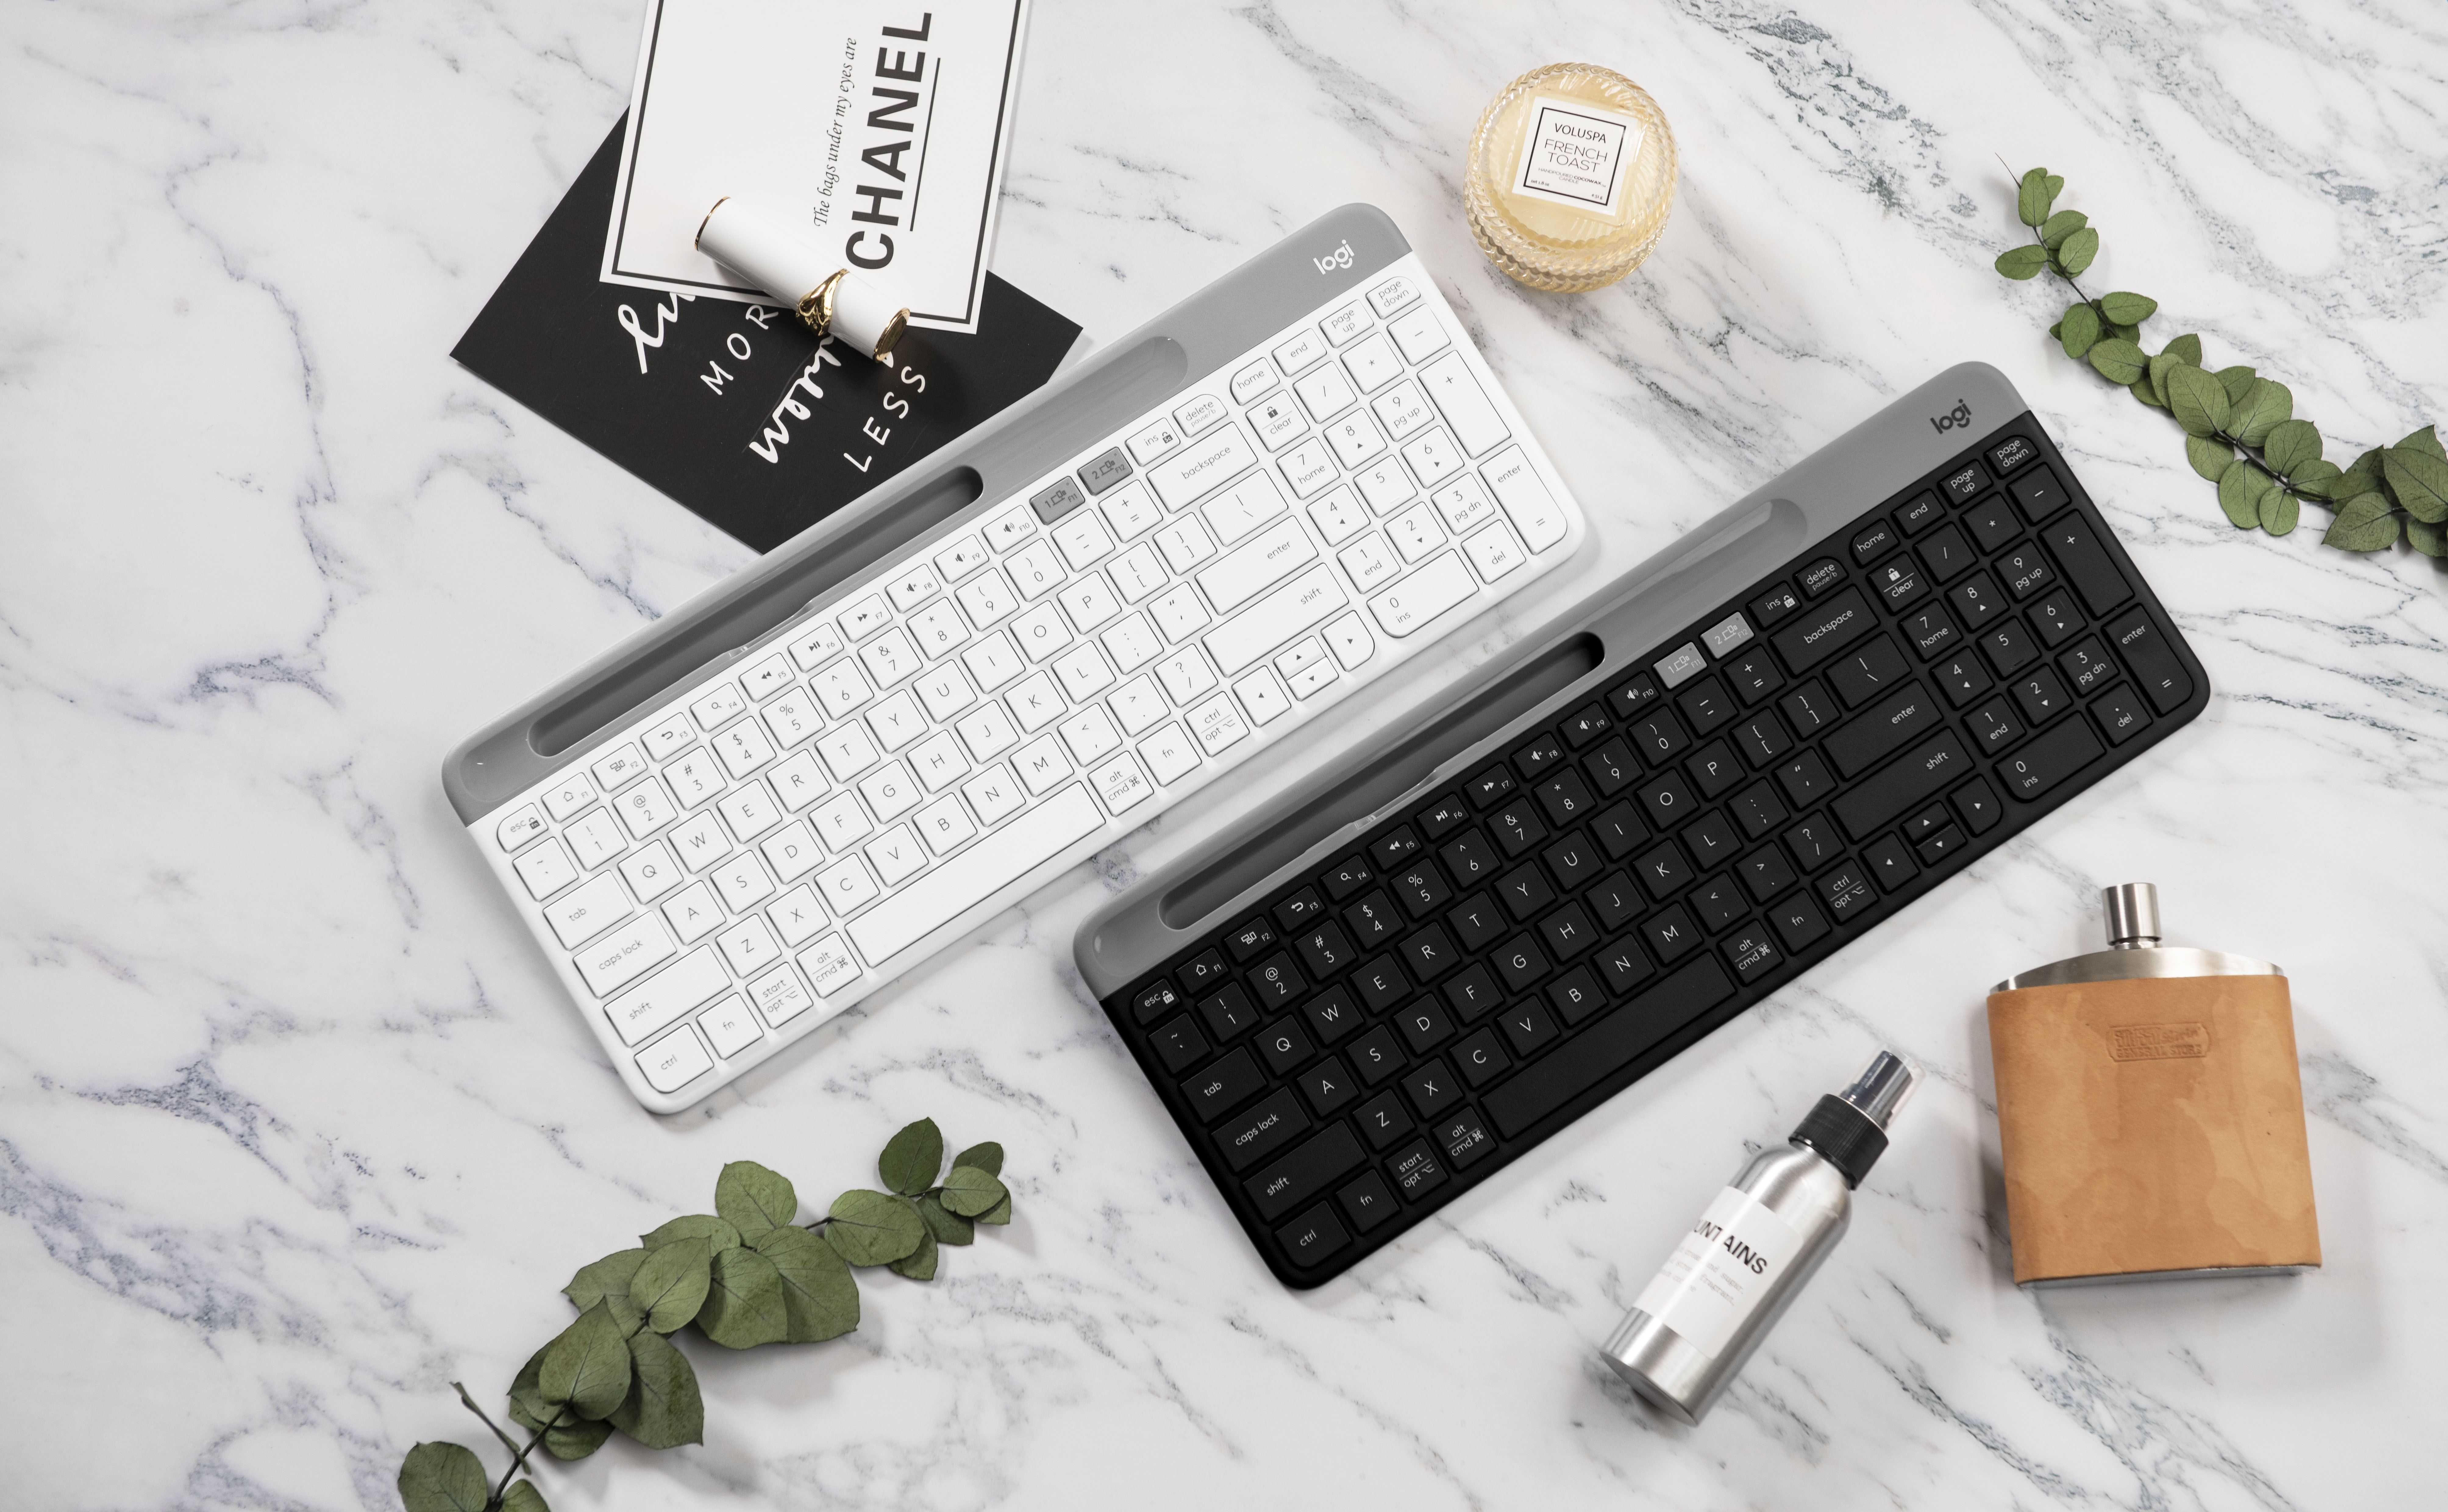 Computer keyboard, Product design, Product, Font, Design, Brand, Meter, computer keyboard, Computer keyboard, Space bar, Technology, Numeric keypad, Electronic device, Input device, Office equipment, Desk, Font, Computer component